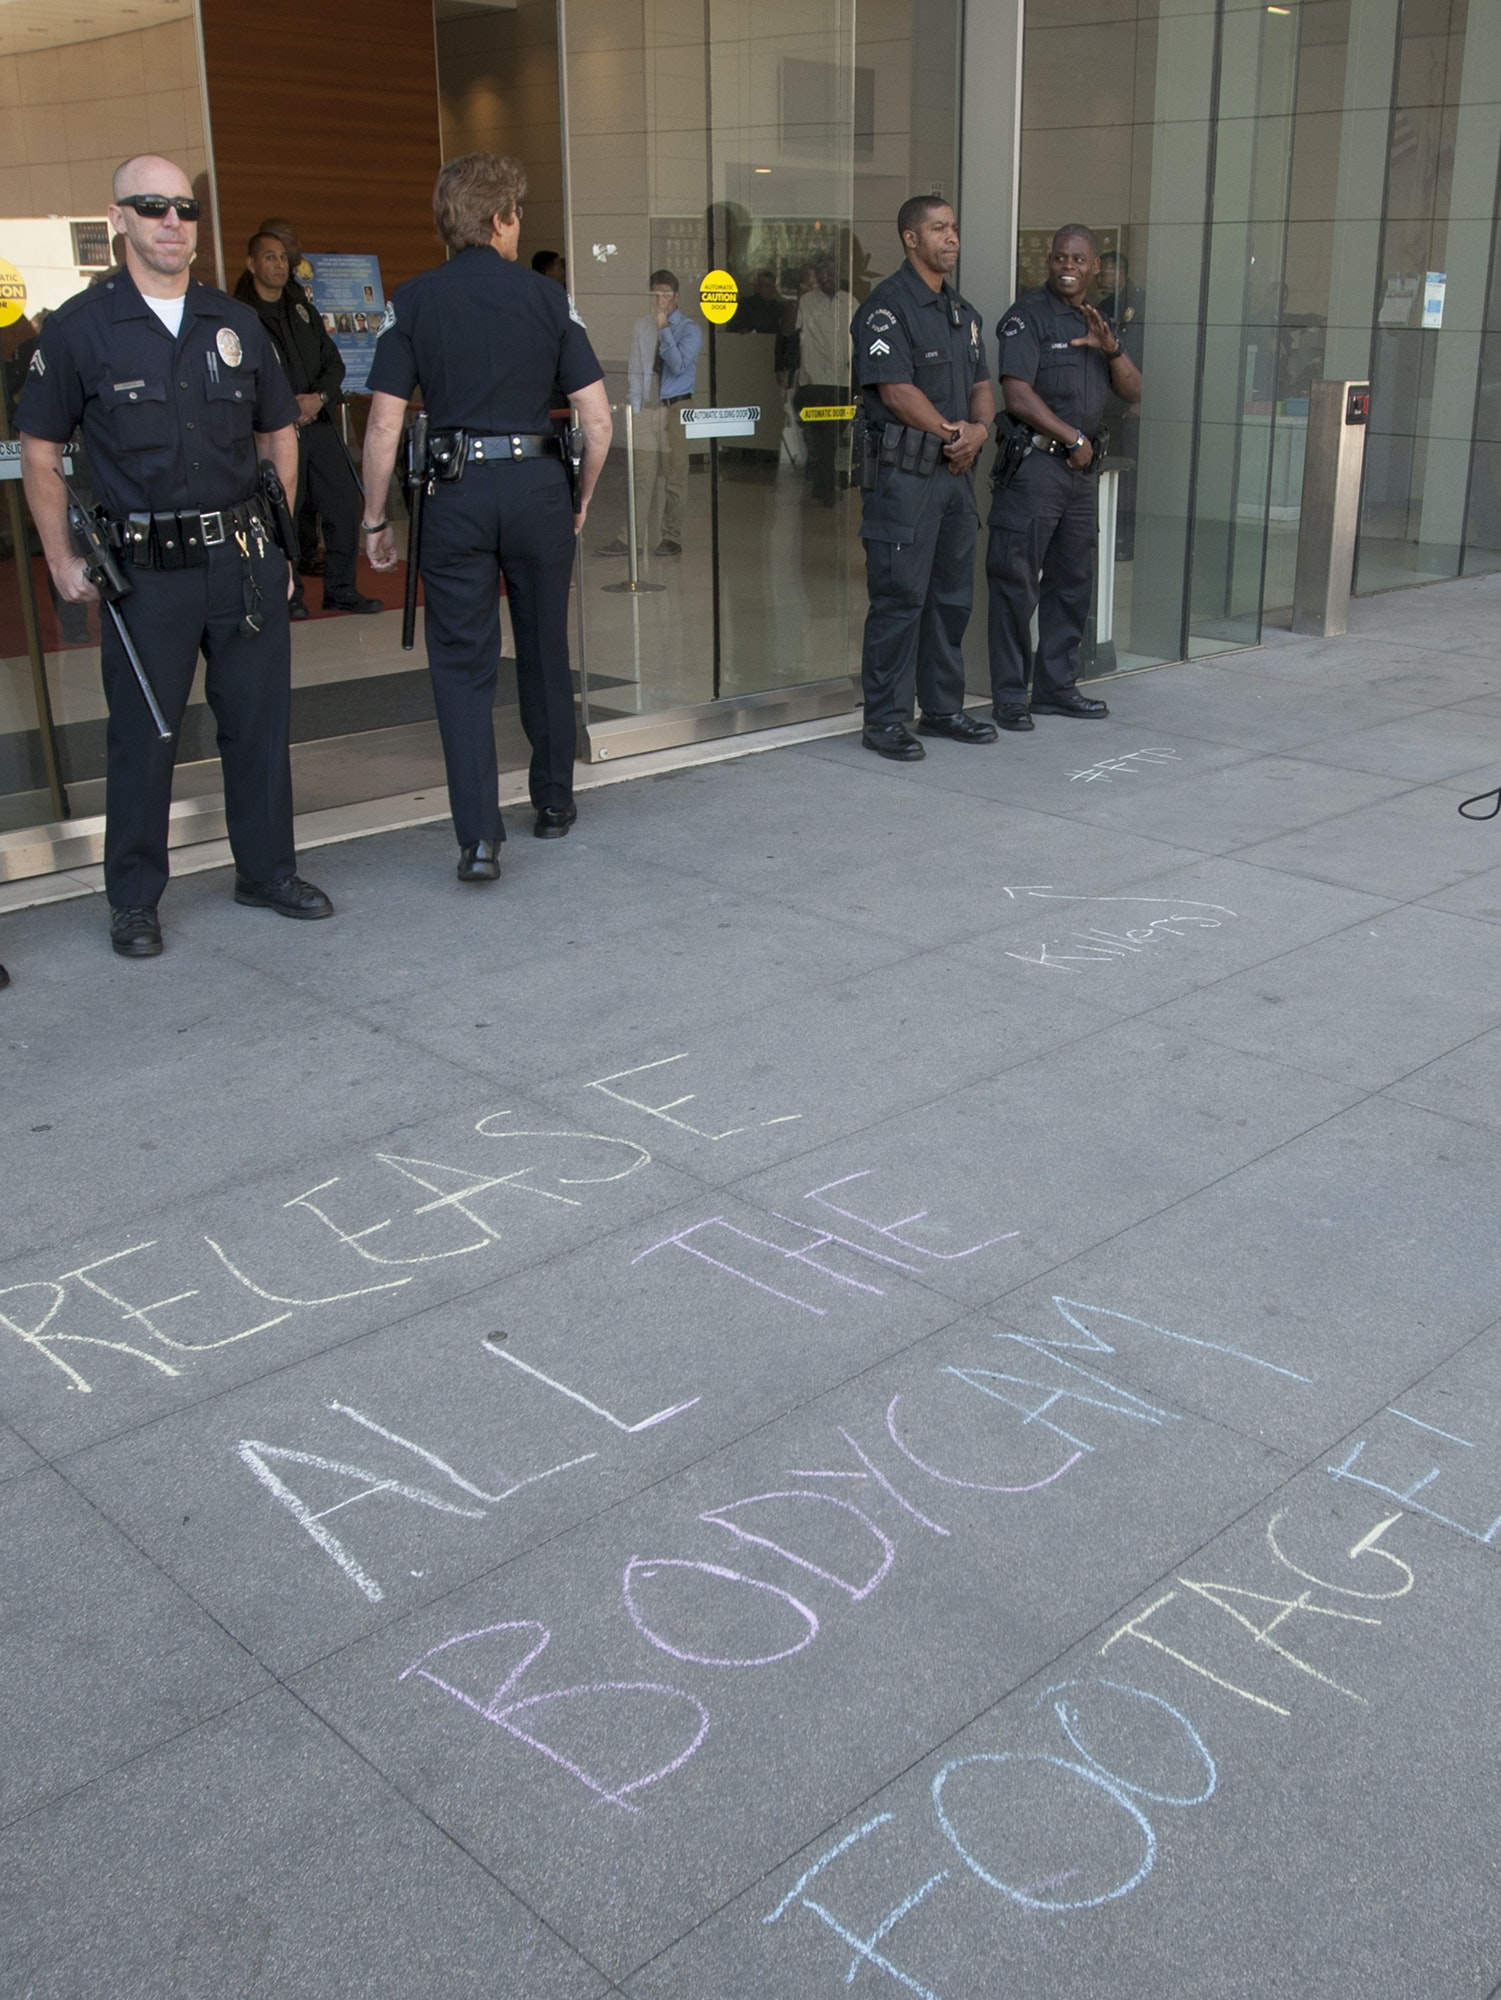 LOS ANGELES, CA - MARCH 3:  A man talks at officers at Los Angeles Police Department Headquarters near a chalk message calling for the release of the video from the body cameras worn by police officers involved in the fatal police shooting of an unarmed homeless man on March 3, 2015 in Los Angeles, California. Police say the homeless man, known by acquaintances as Africa, was shot dead by officers when he allegedly reached for the gun of one of several officers wrestling to the ground by his sidewalk tent. Amateur video of the controversial incident has been widely viewed over the internet    (Photo by David McNew/Getty Images)